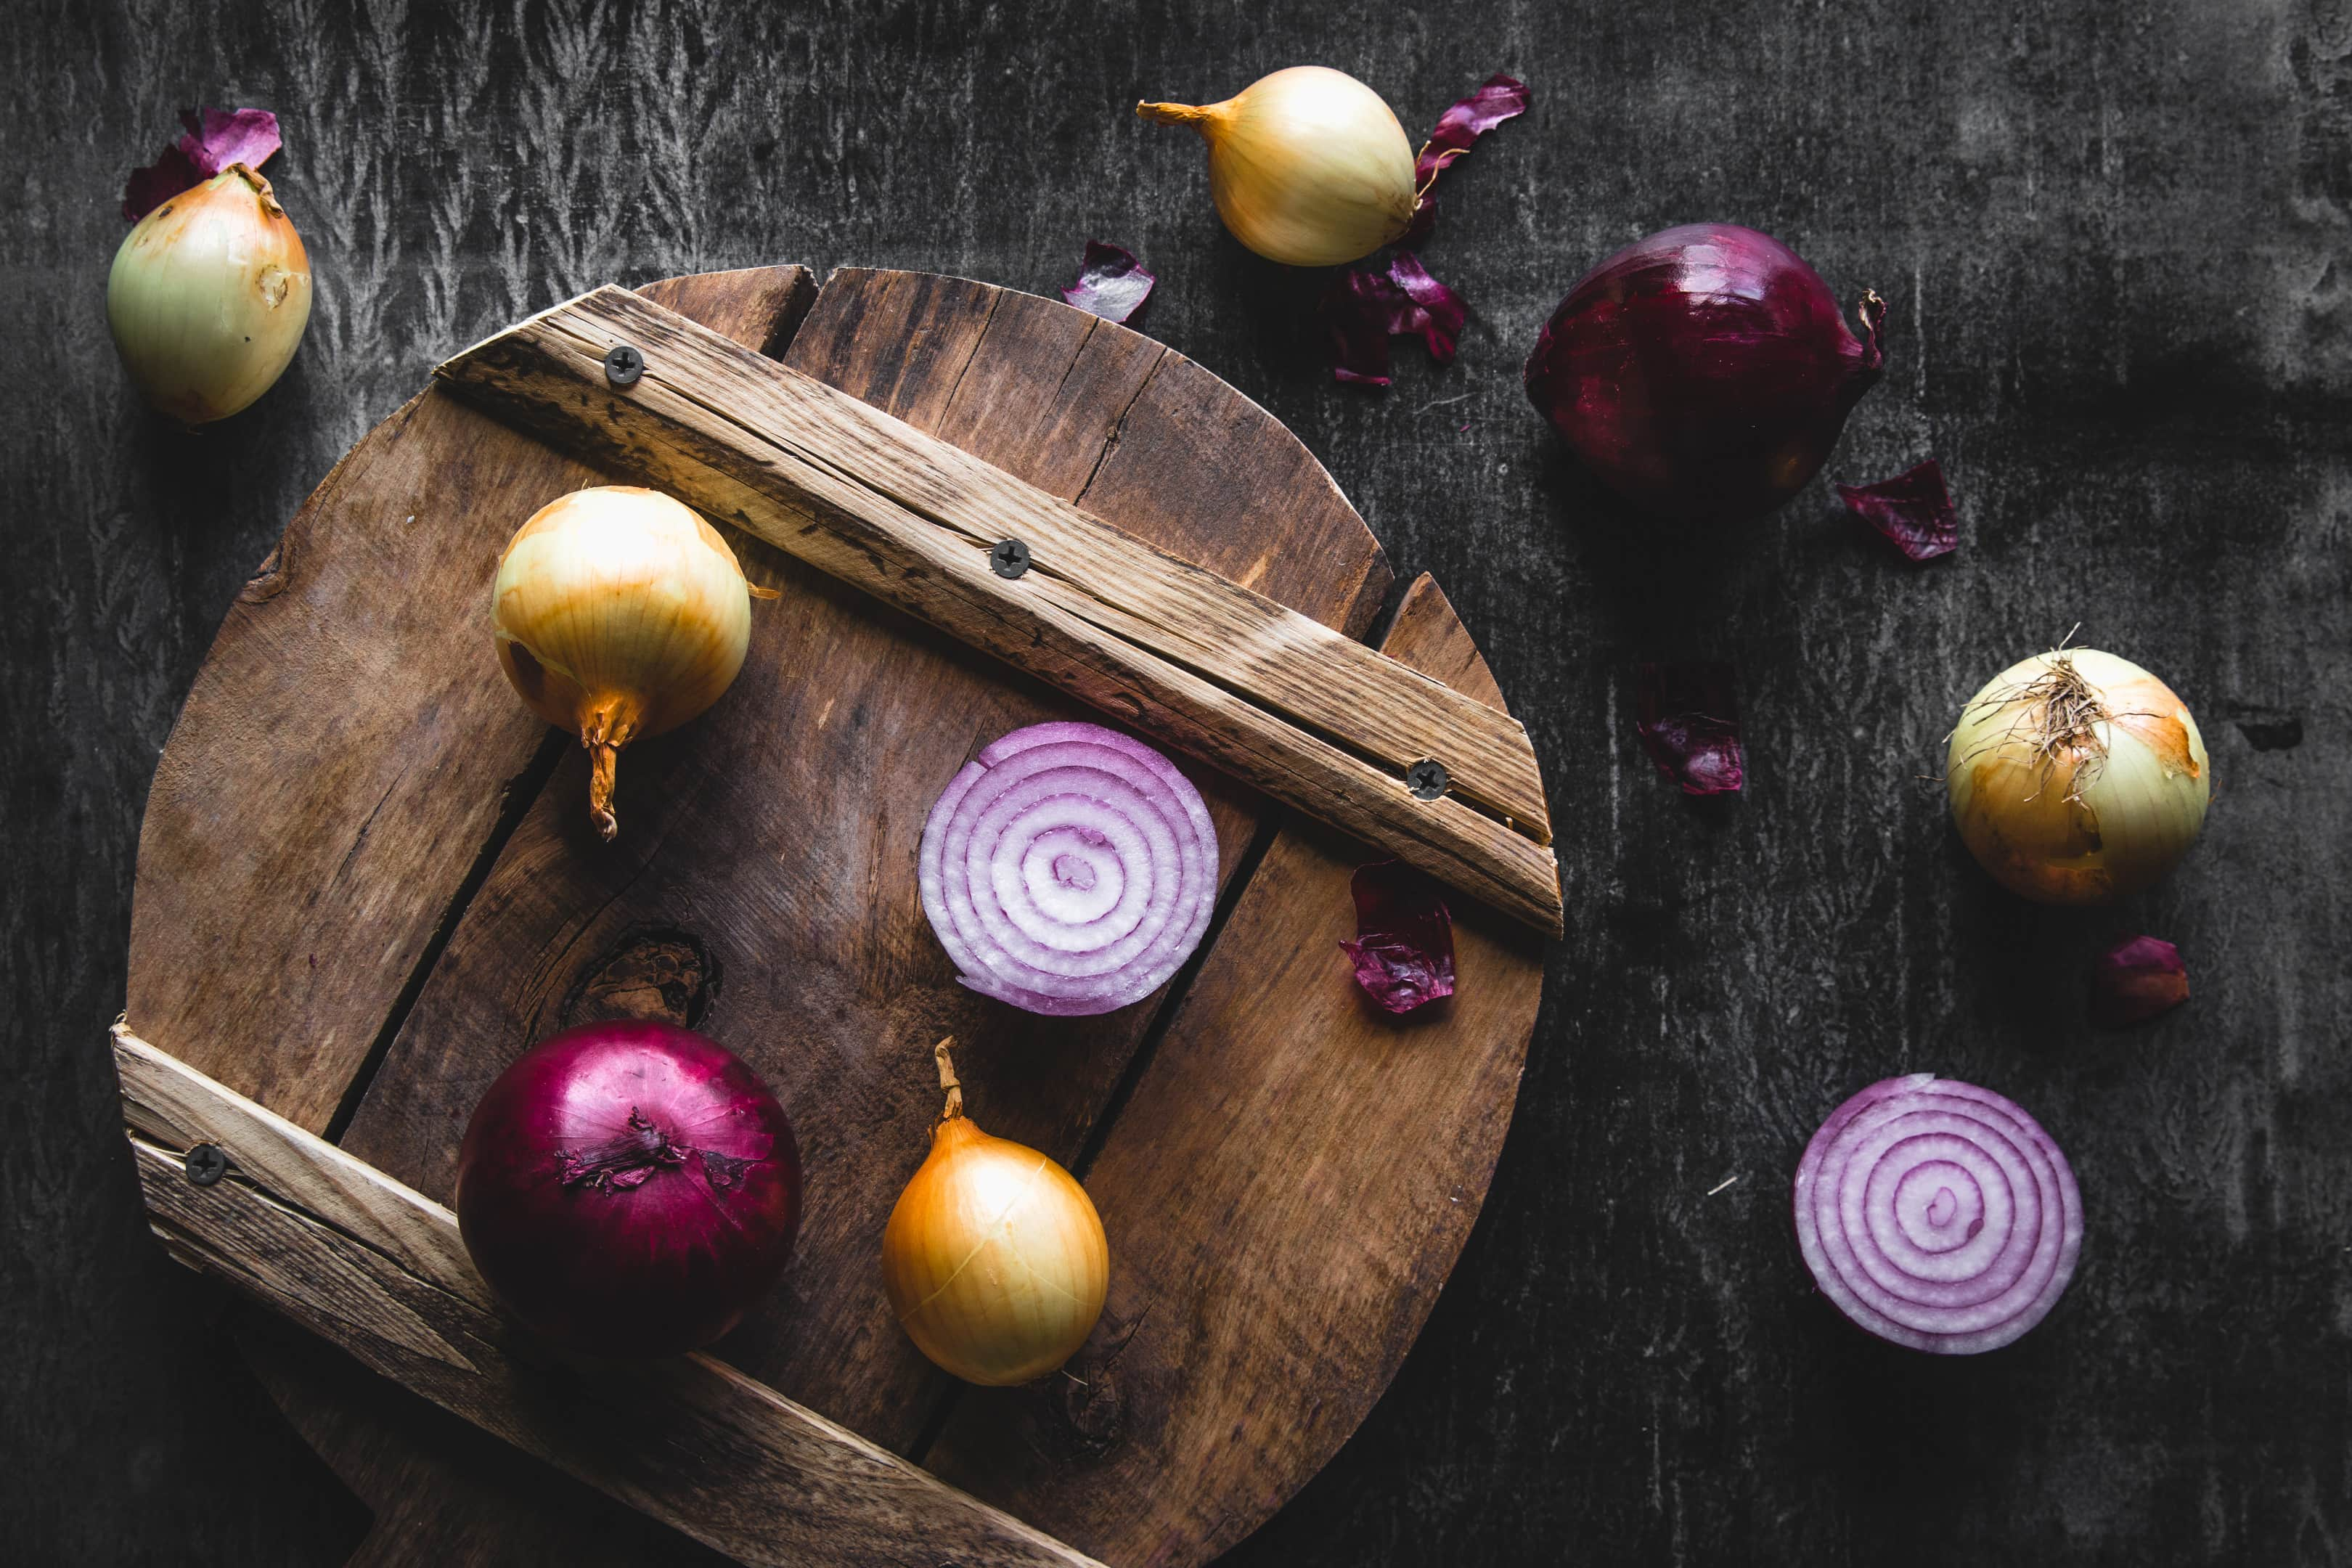 Red onion slices and yellow onions on wooden board